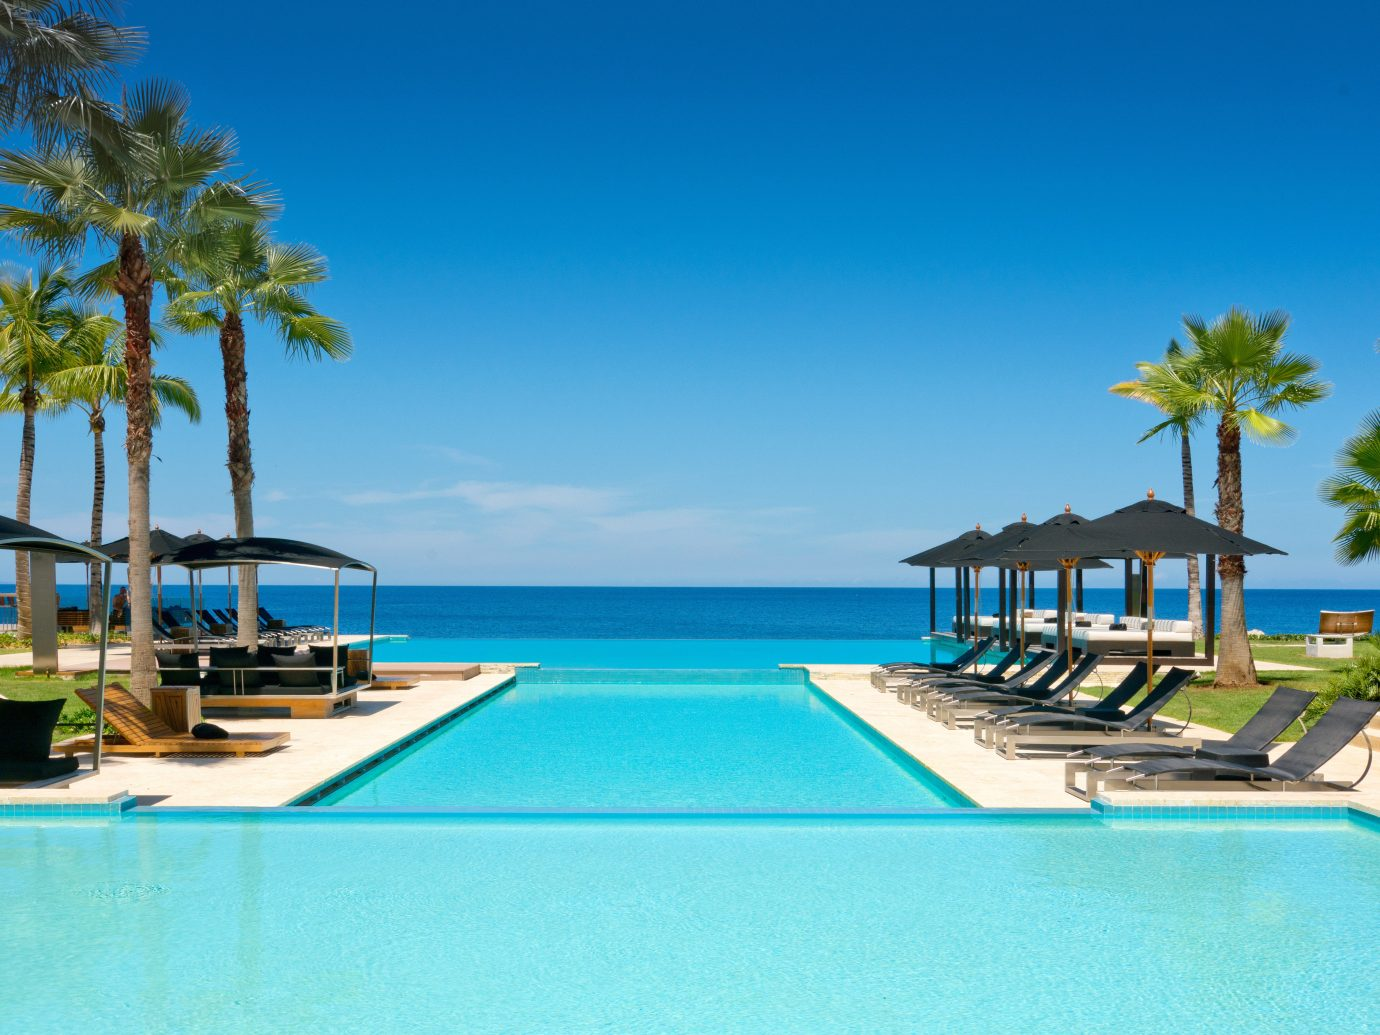 Beachfront Hotels Luxury Pool water sky outdoor Beach swimming swimming pool chair leisure blue property Resort vacation caribbean estate condominium resort town marina Sea bay Villa real estate Lagoon palm dock lined shore Island